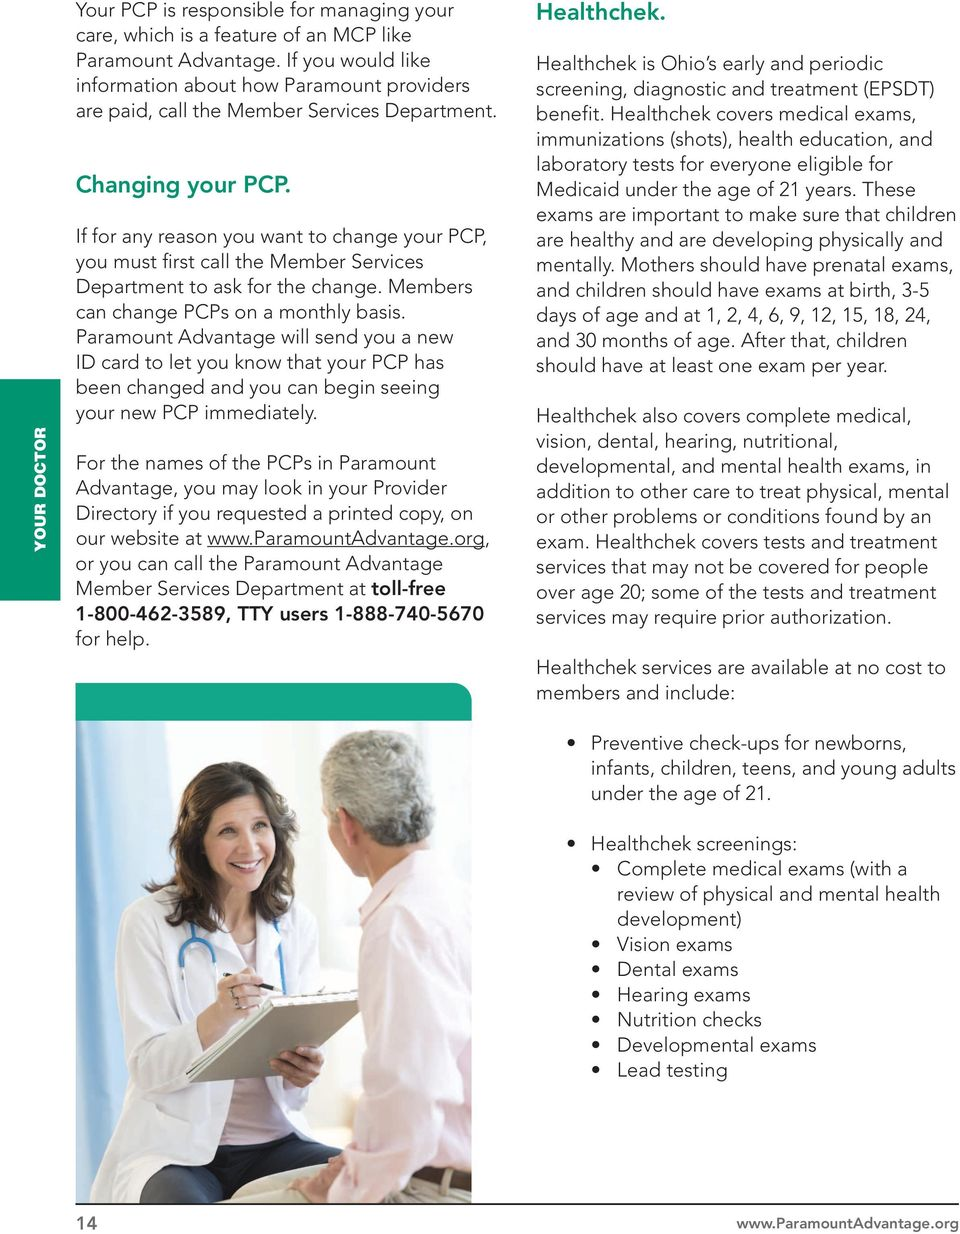 If for any reason you want to change your PCP, you must first call the Member Services Department to ask for the change. Members can change PCPs on a monthly basis.